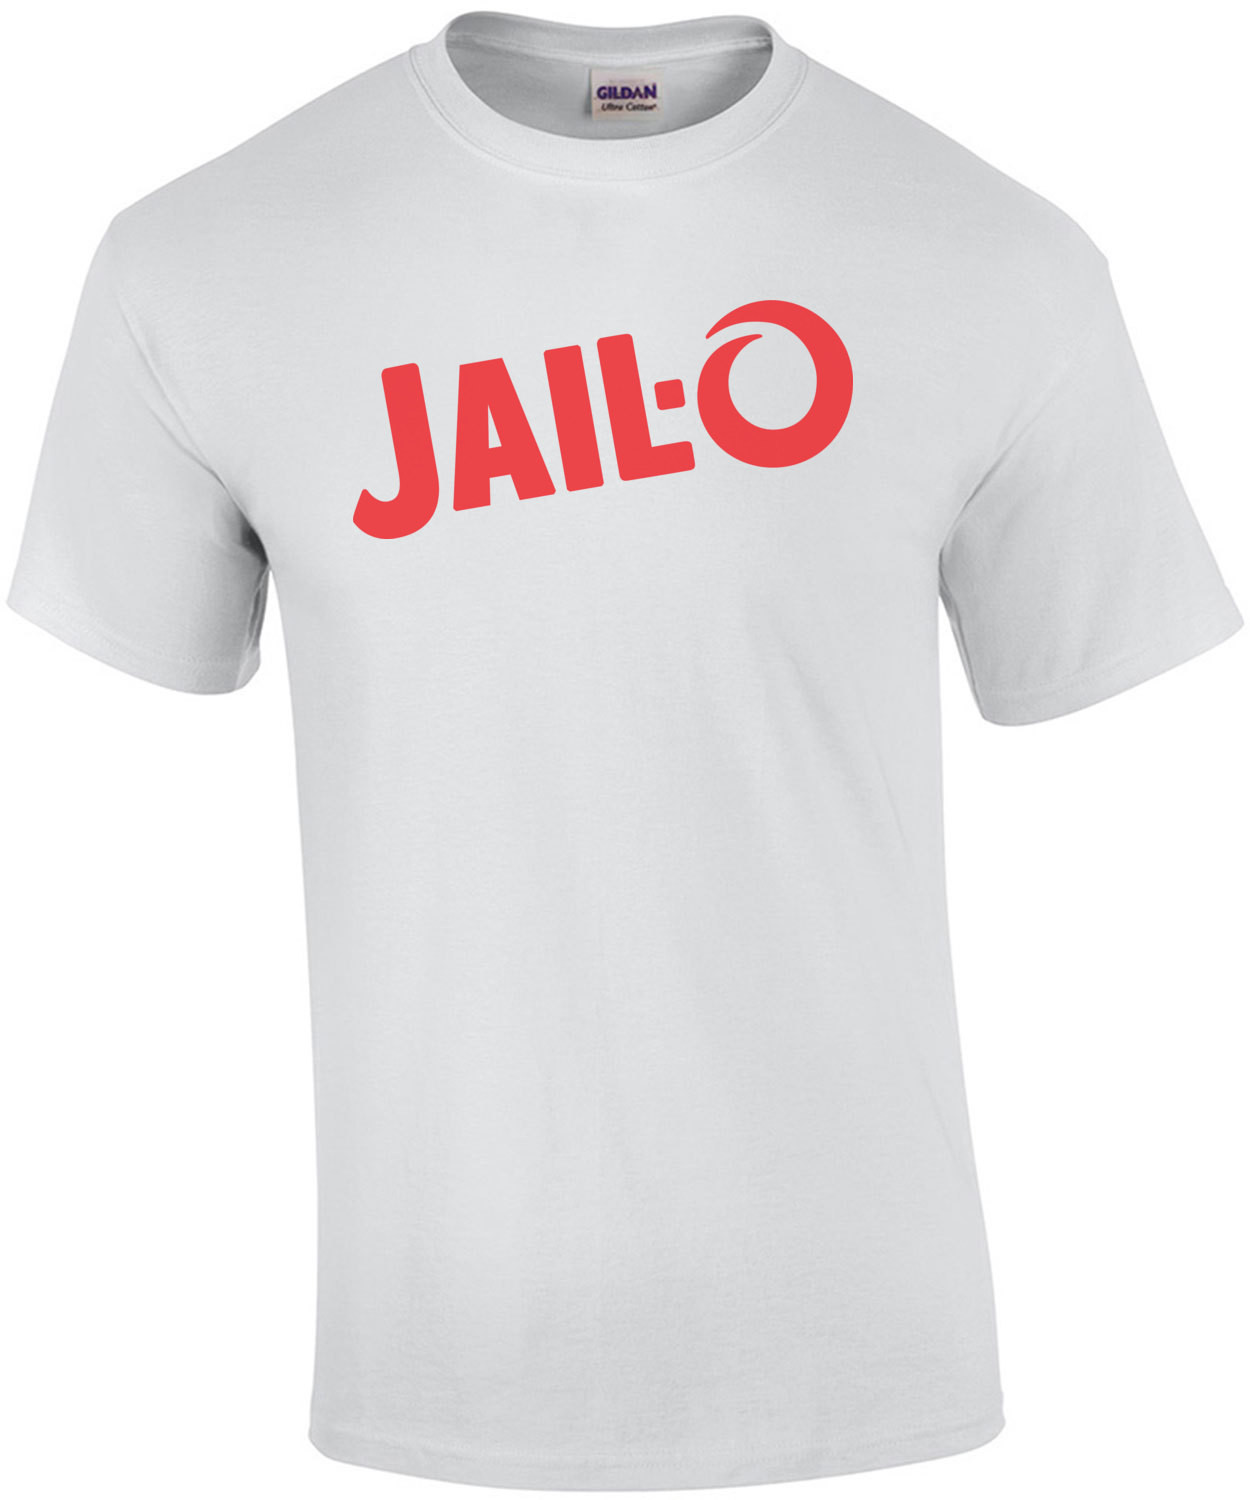 Jail-o Jello Parody Bill Cosby Funny Shirt